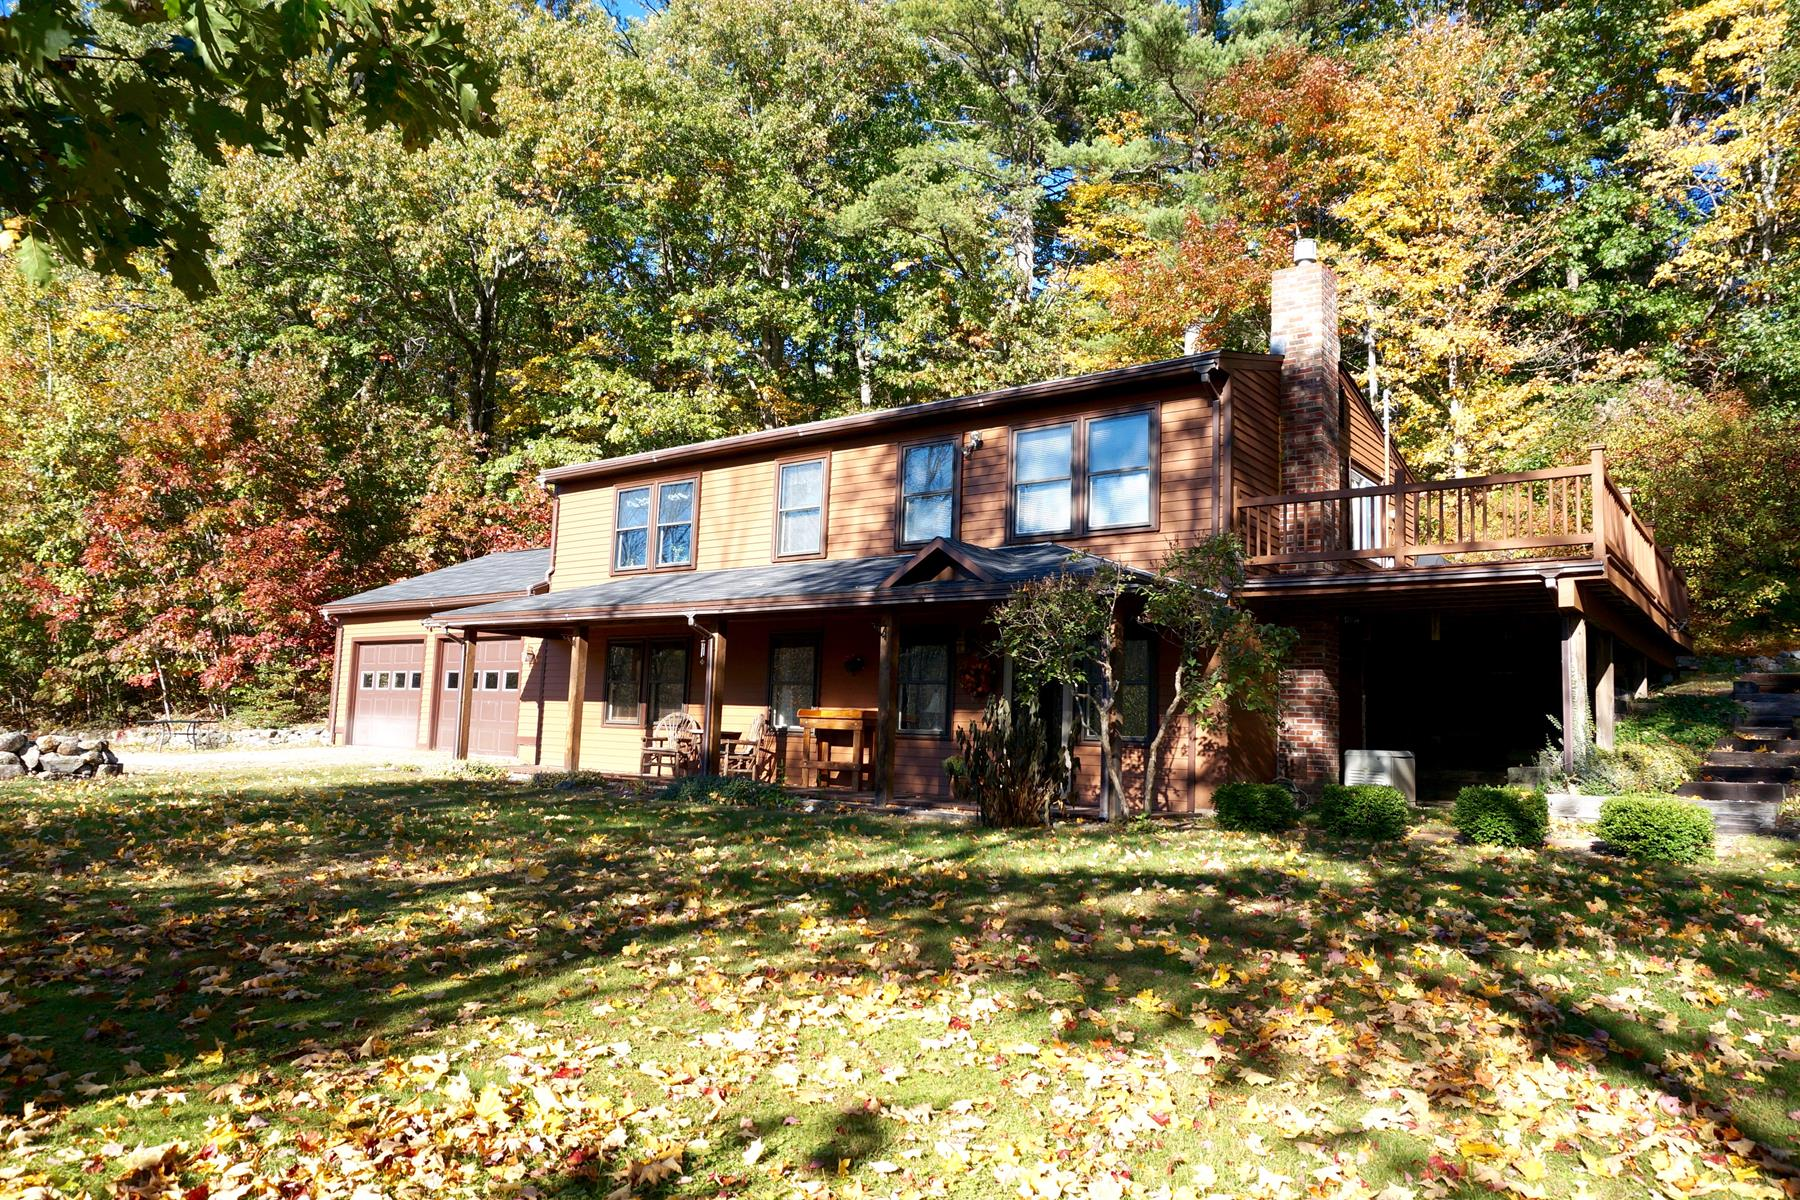 Single Family Home for Sale at 90 Meetinghouse Hill Road, Sutton 90 Meetinghouse Hill Rd Sutton, New Hampshire 03273 United States